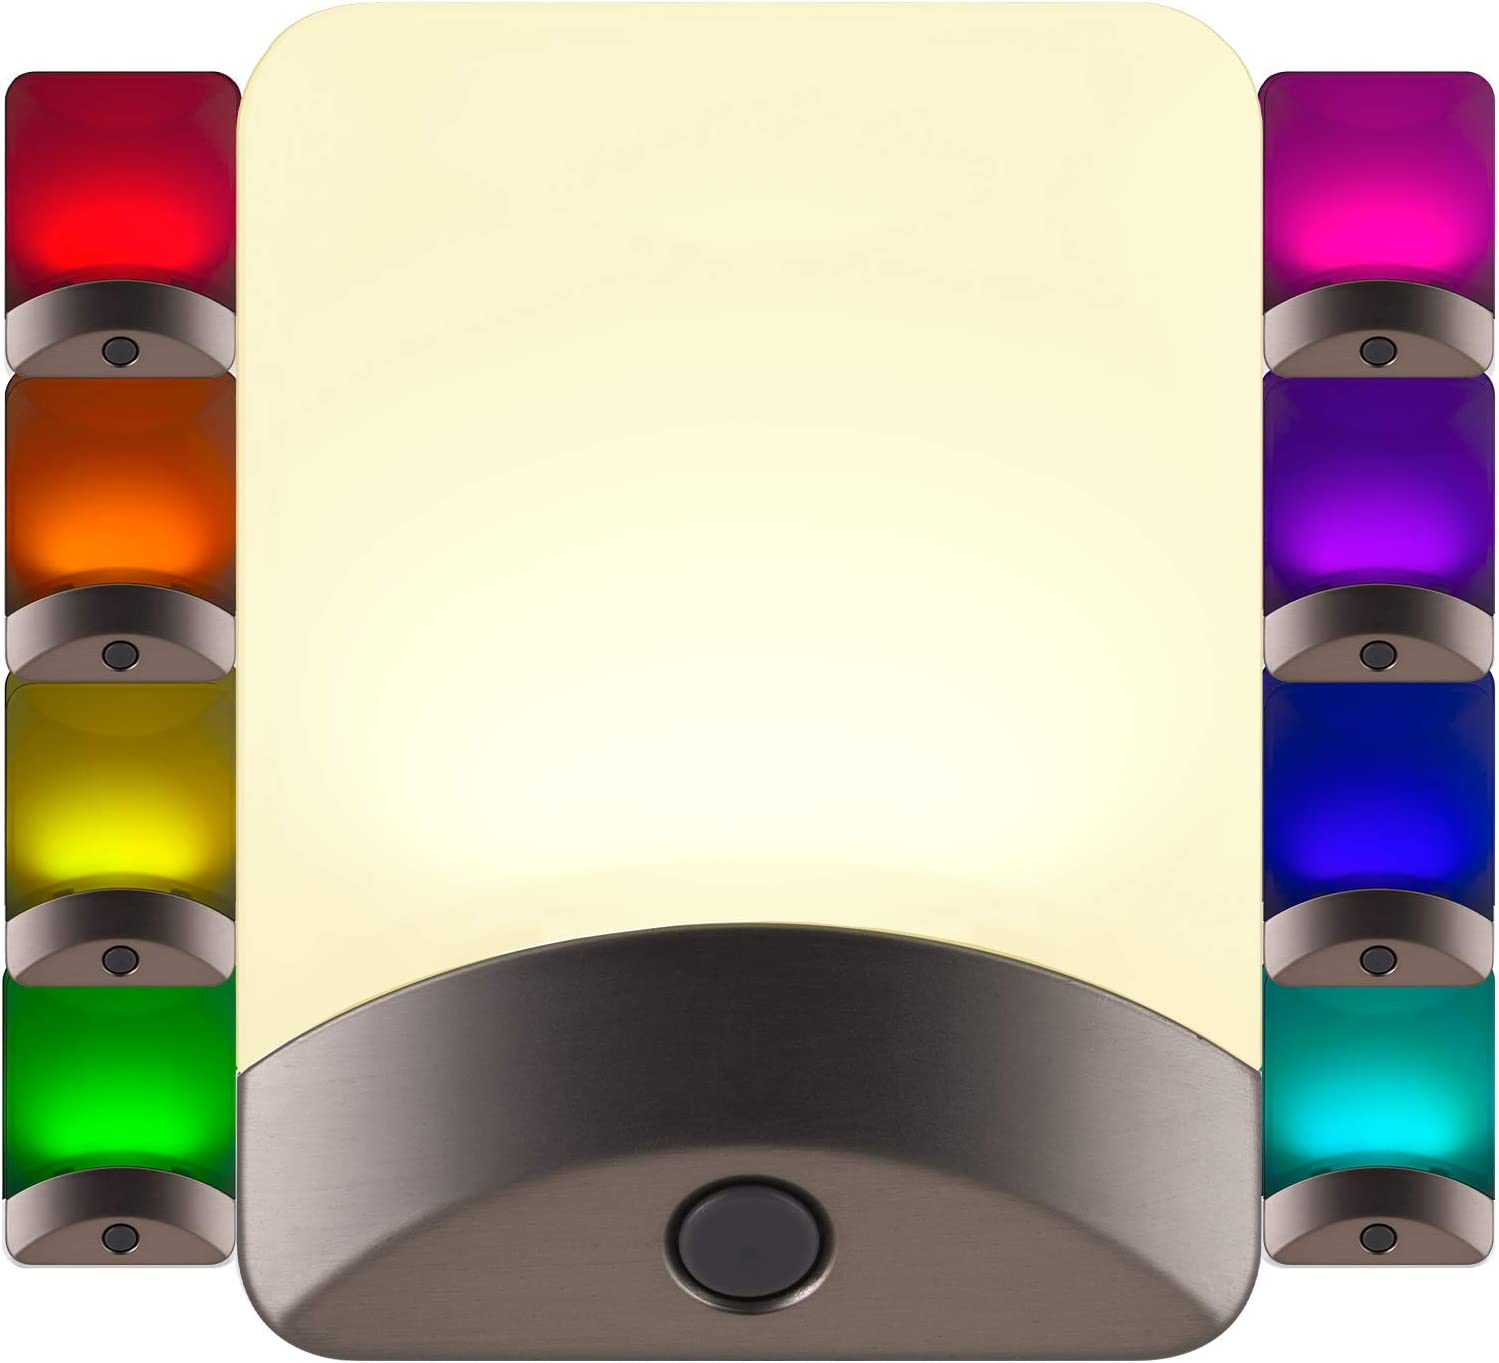 Clear Mouse Wall Plug In Gift For Man Woman Teen Bathroom Bedroom Kitchen Decor Stained Glass Night Light Light Sensor Rotating Base